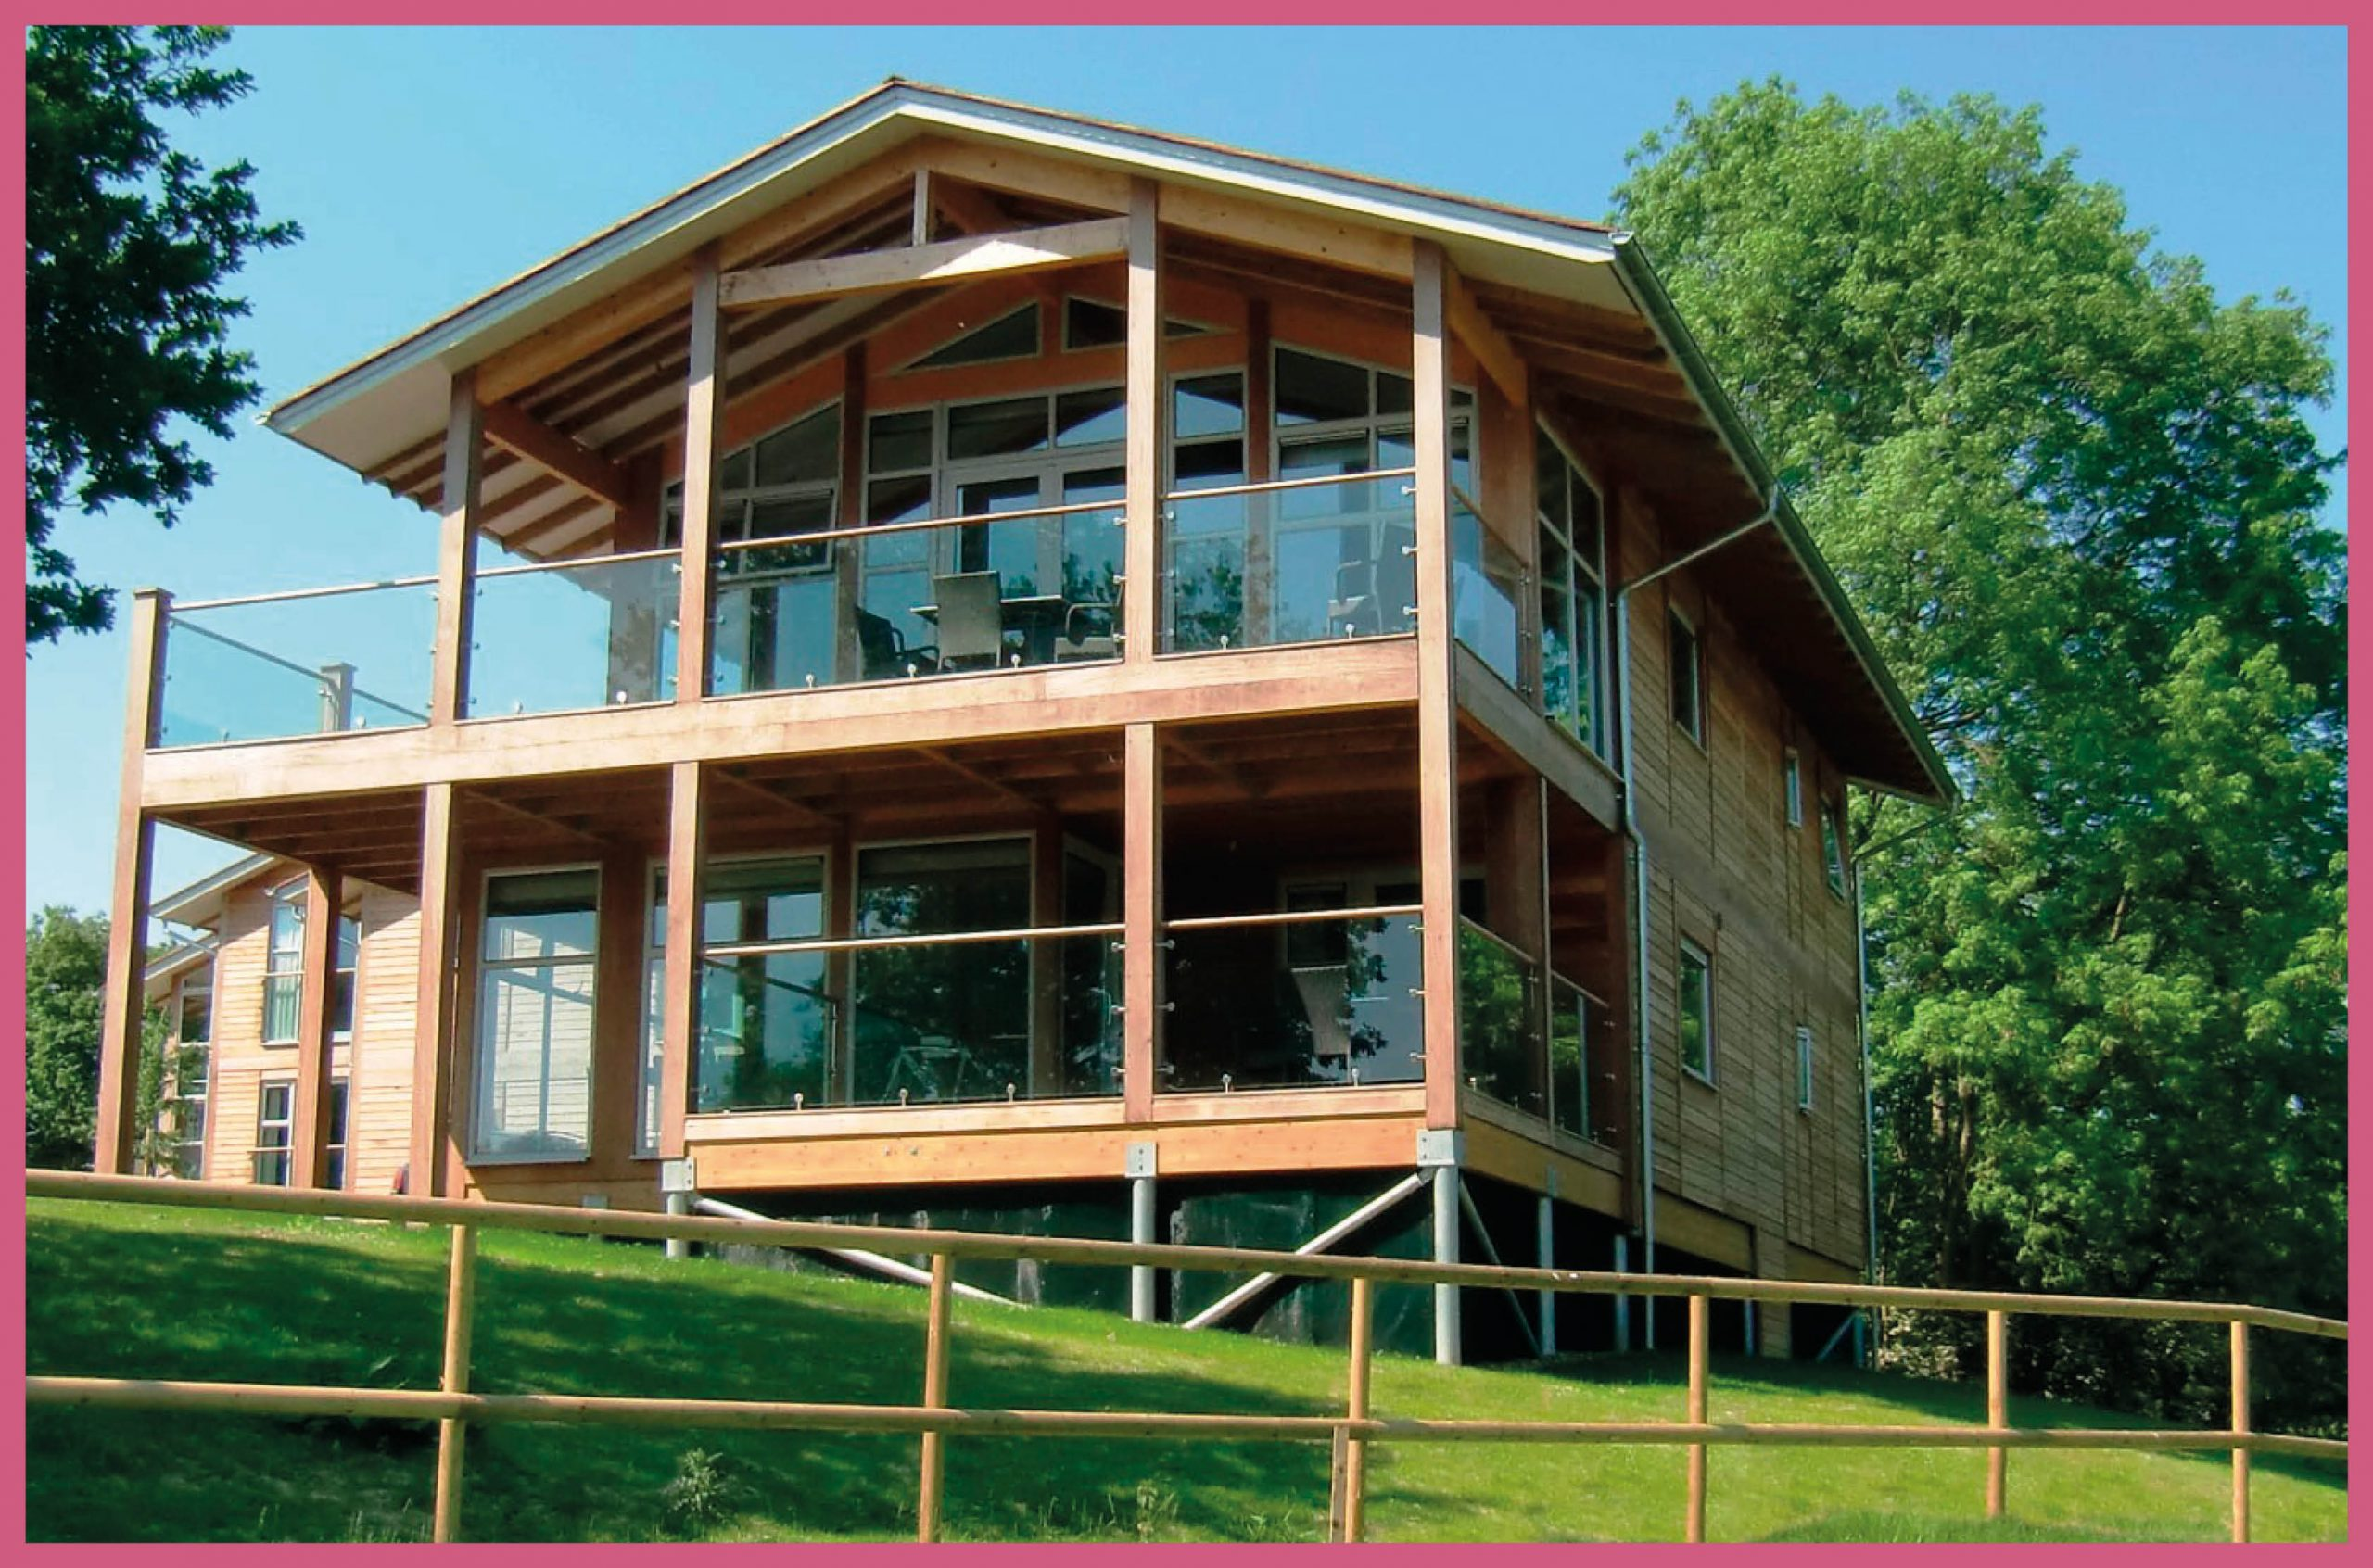 10% discount off Luxury Lodge Staycations